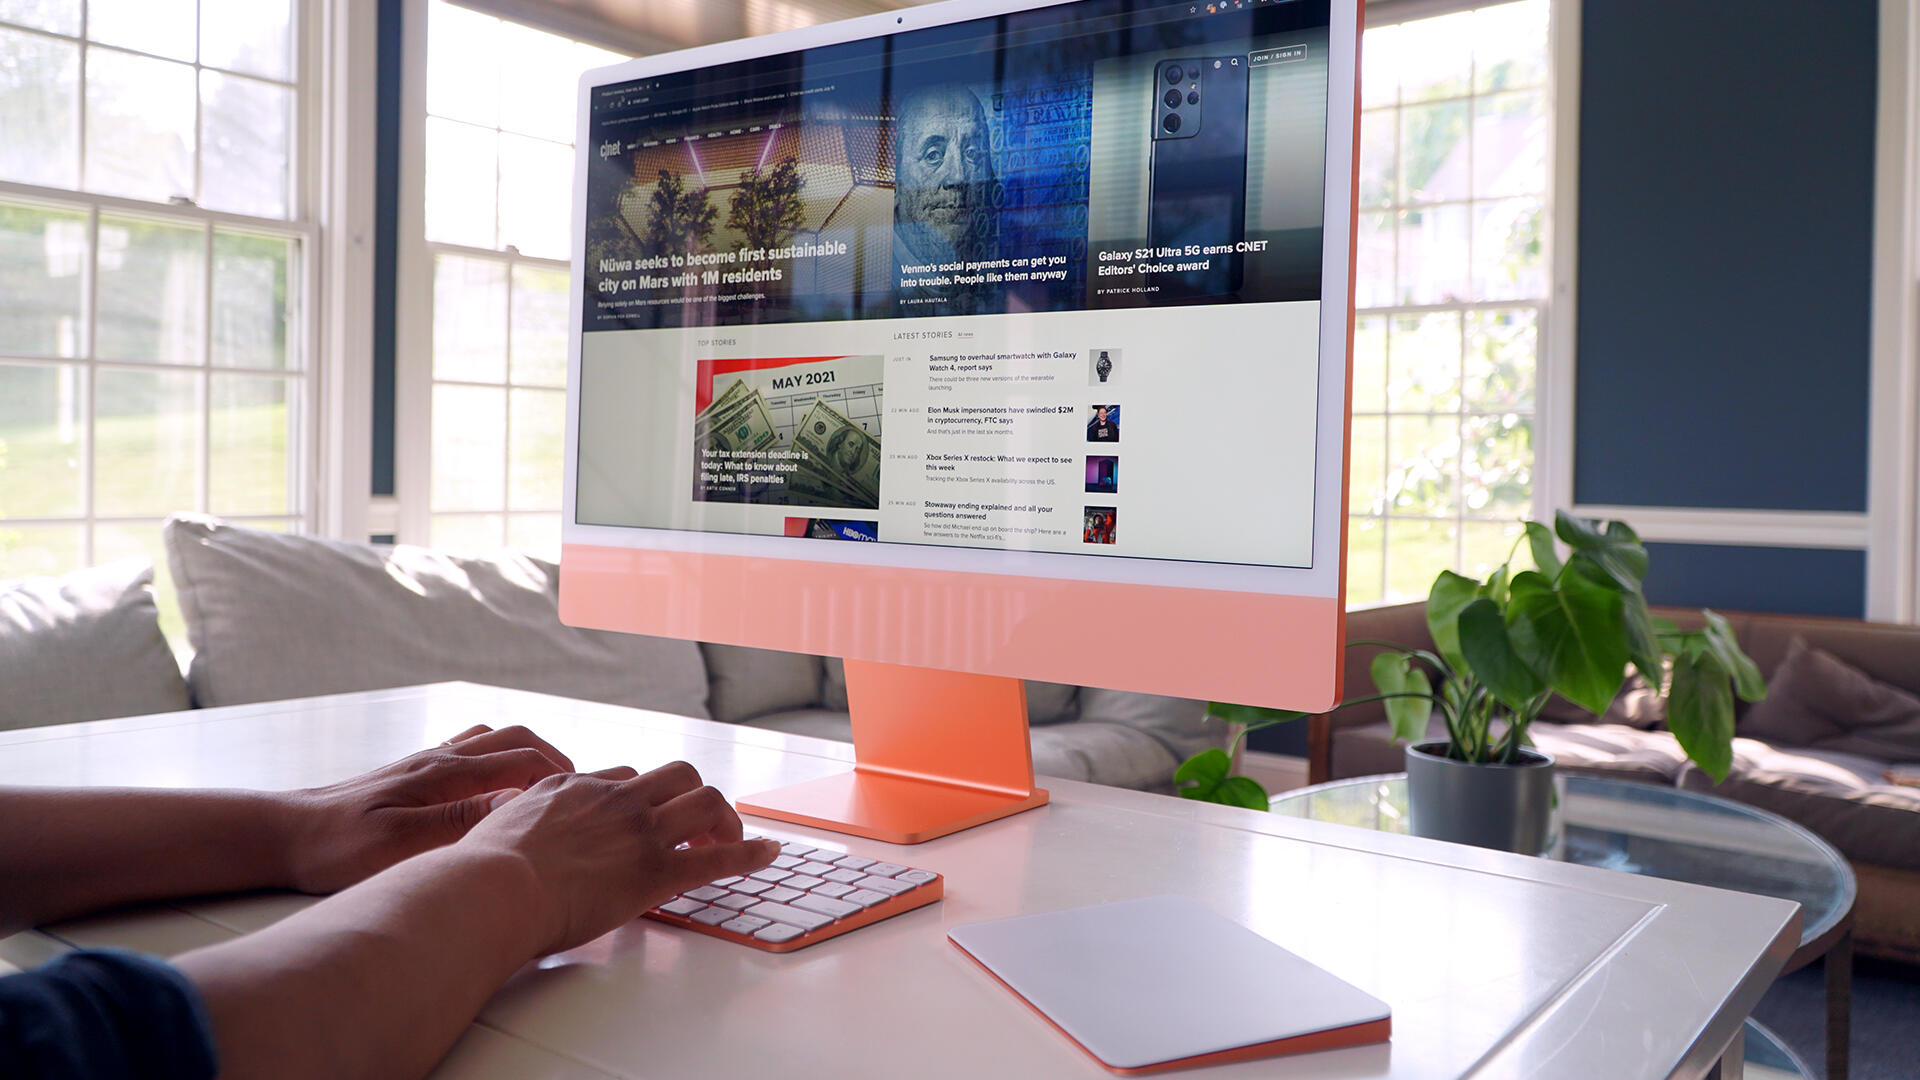 Video: Apple iMac M1 24-inch review